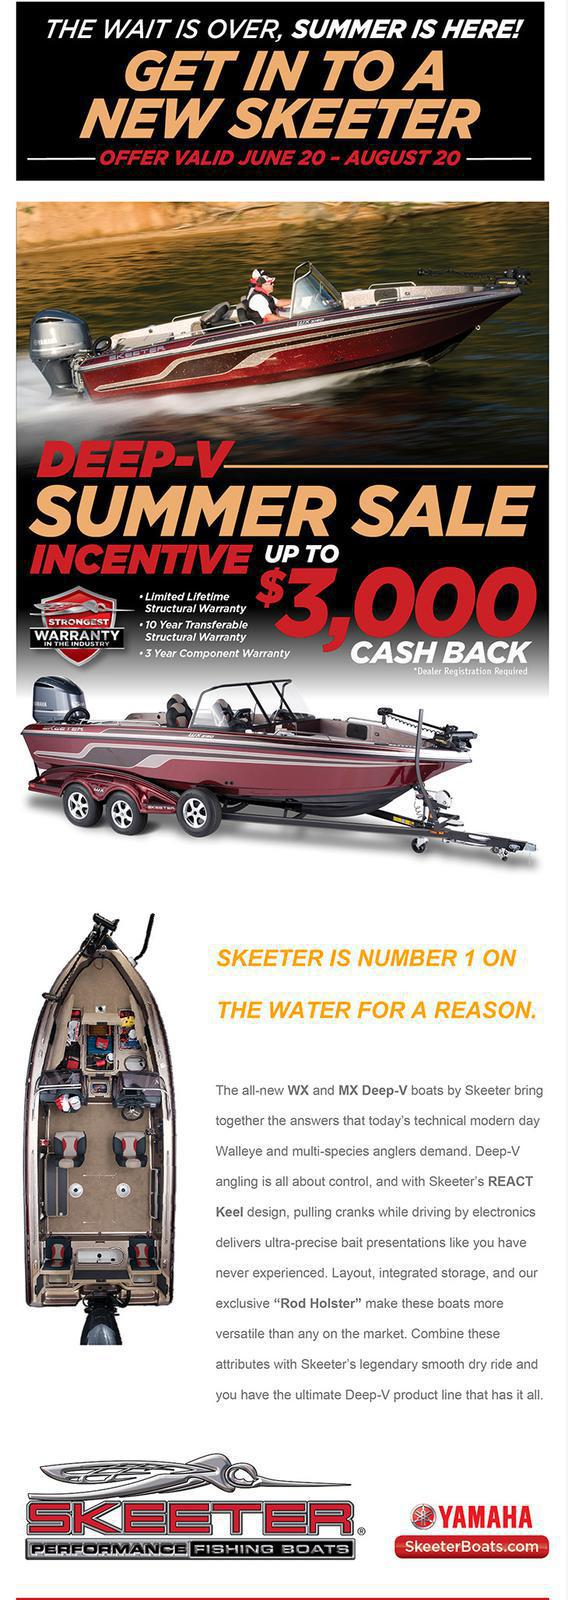 The Wait is Over, Summer is Here!  Get into a New Skeeter. Up to $3,000 Cash Back.